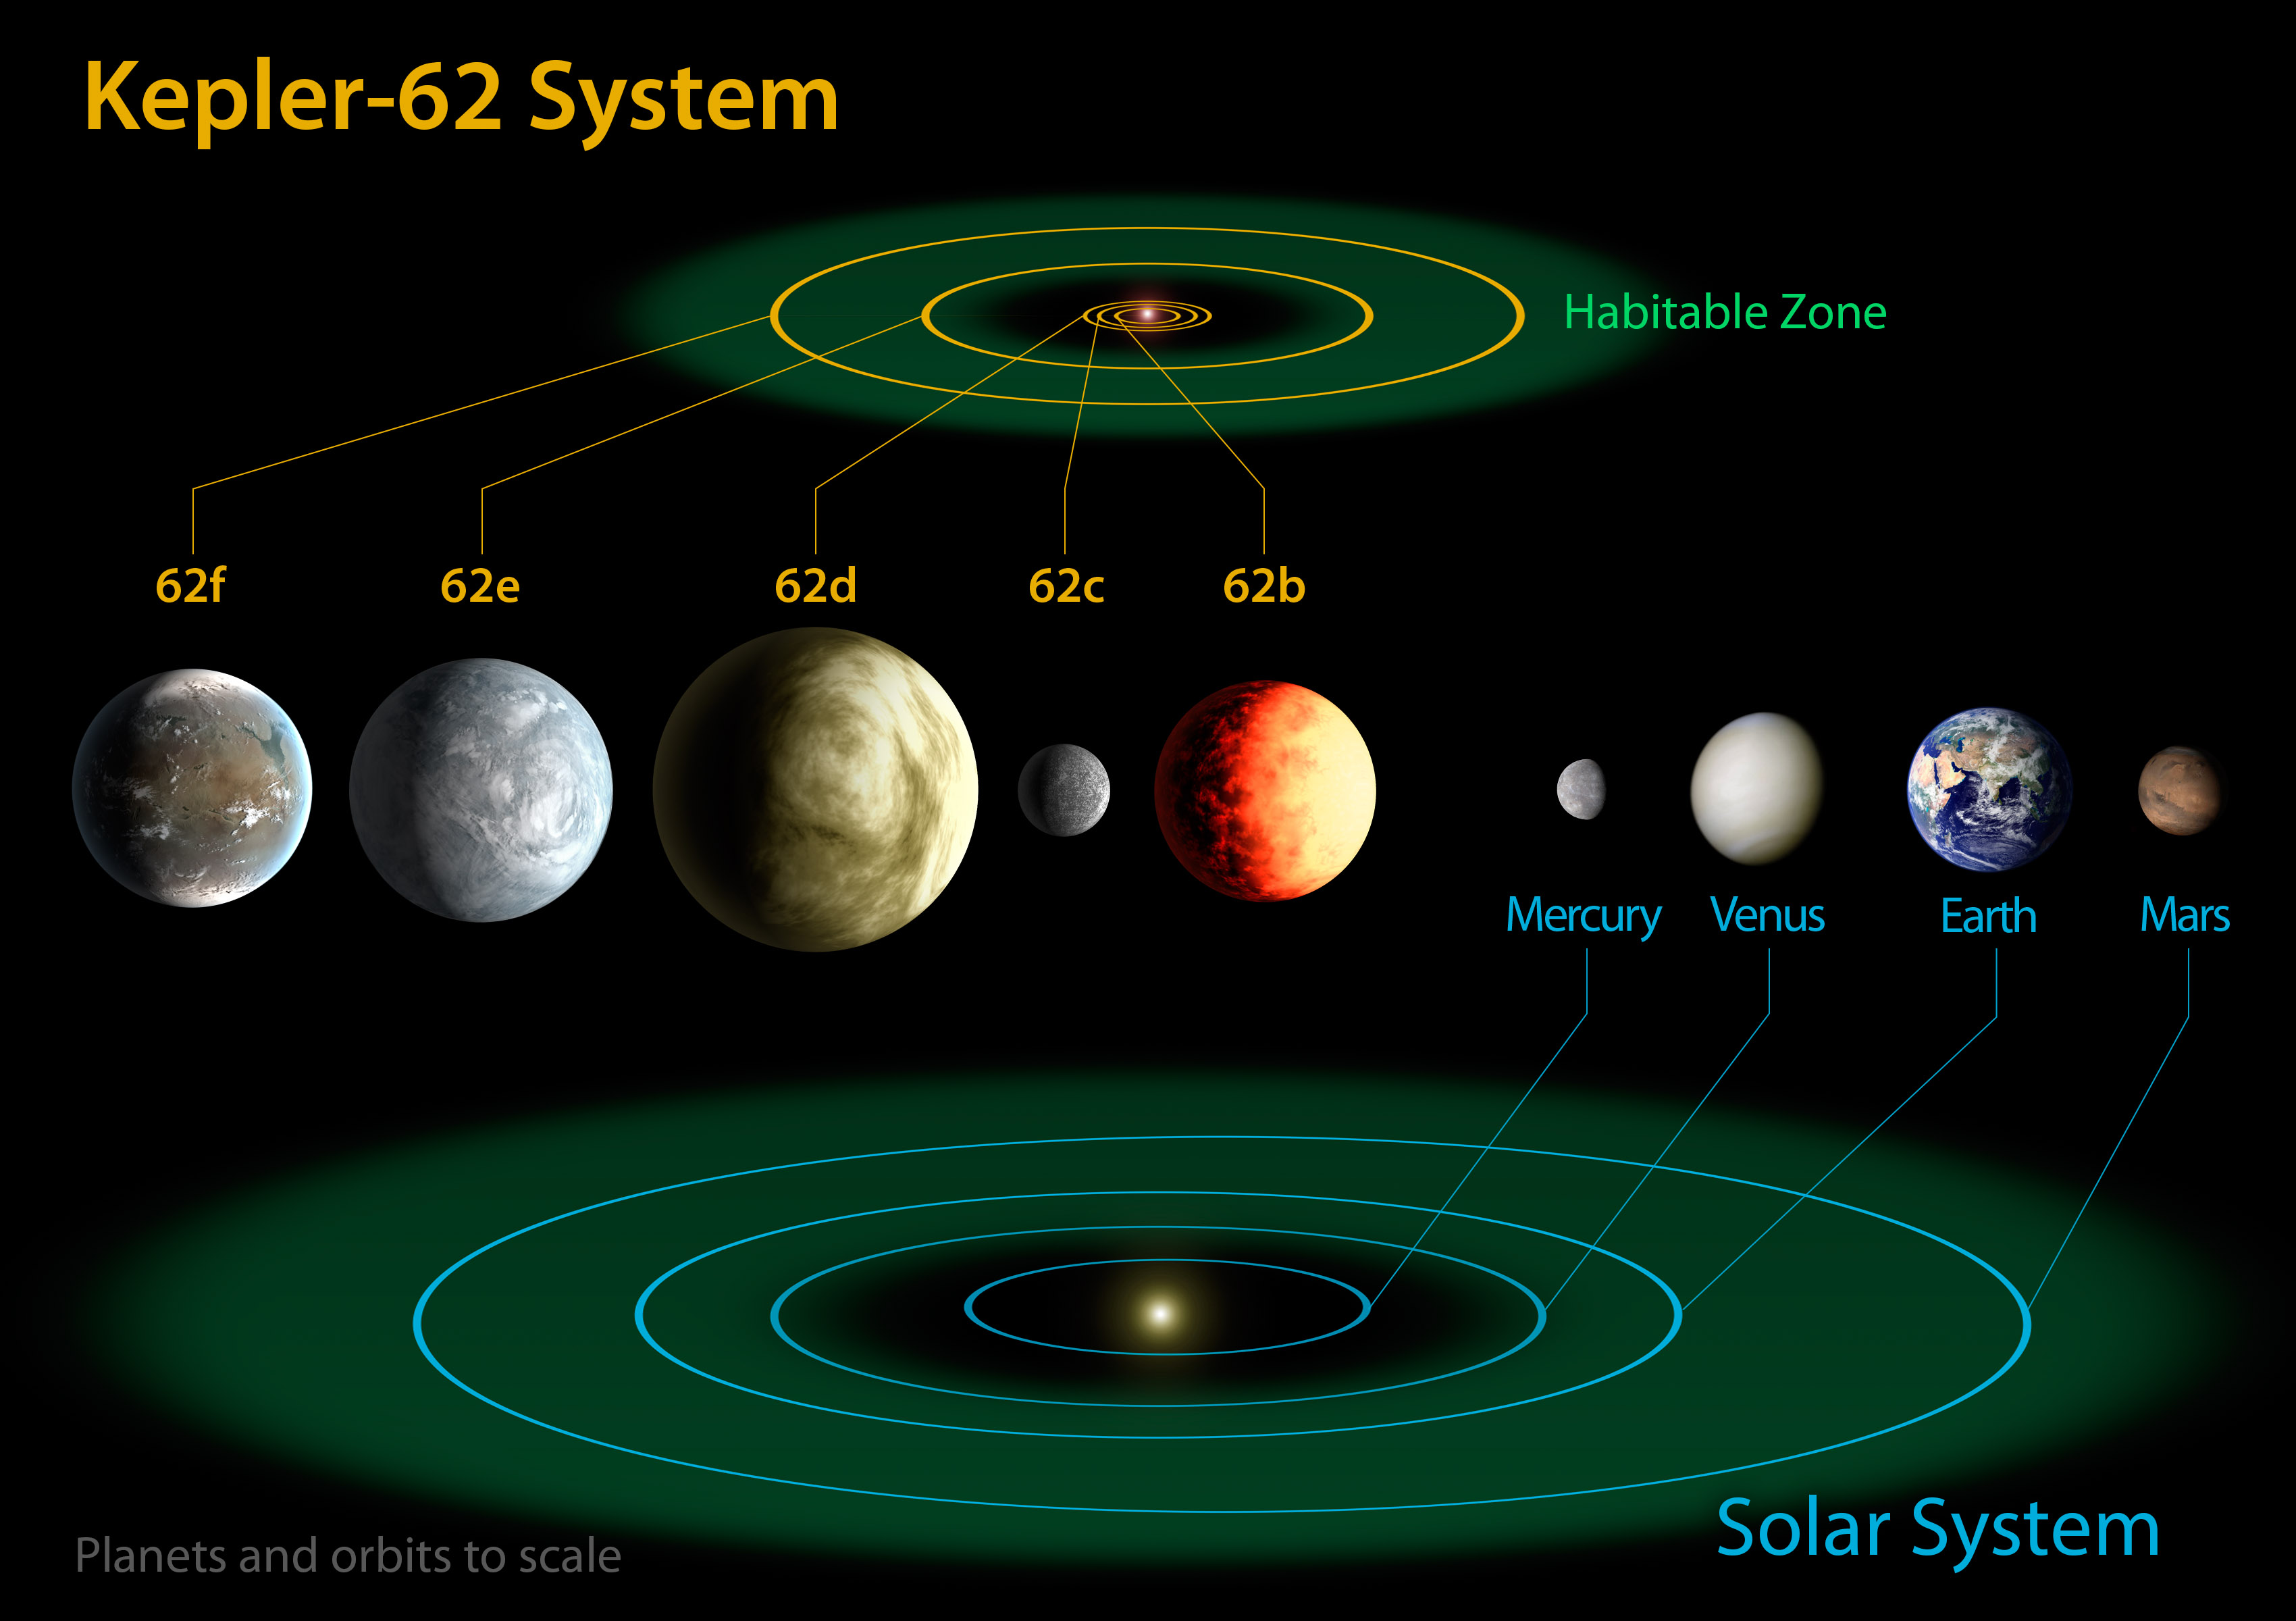 Kepler-62 and the Solar System | NASA